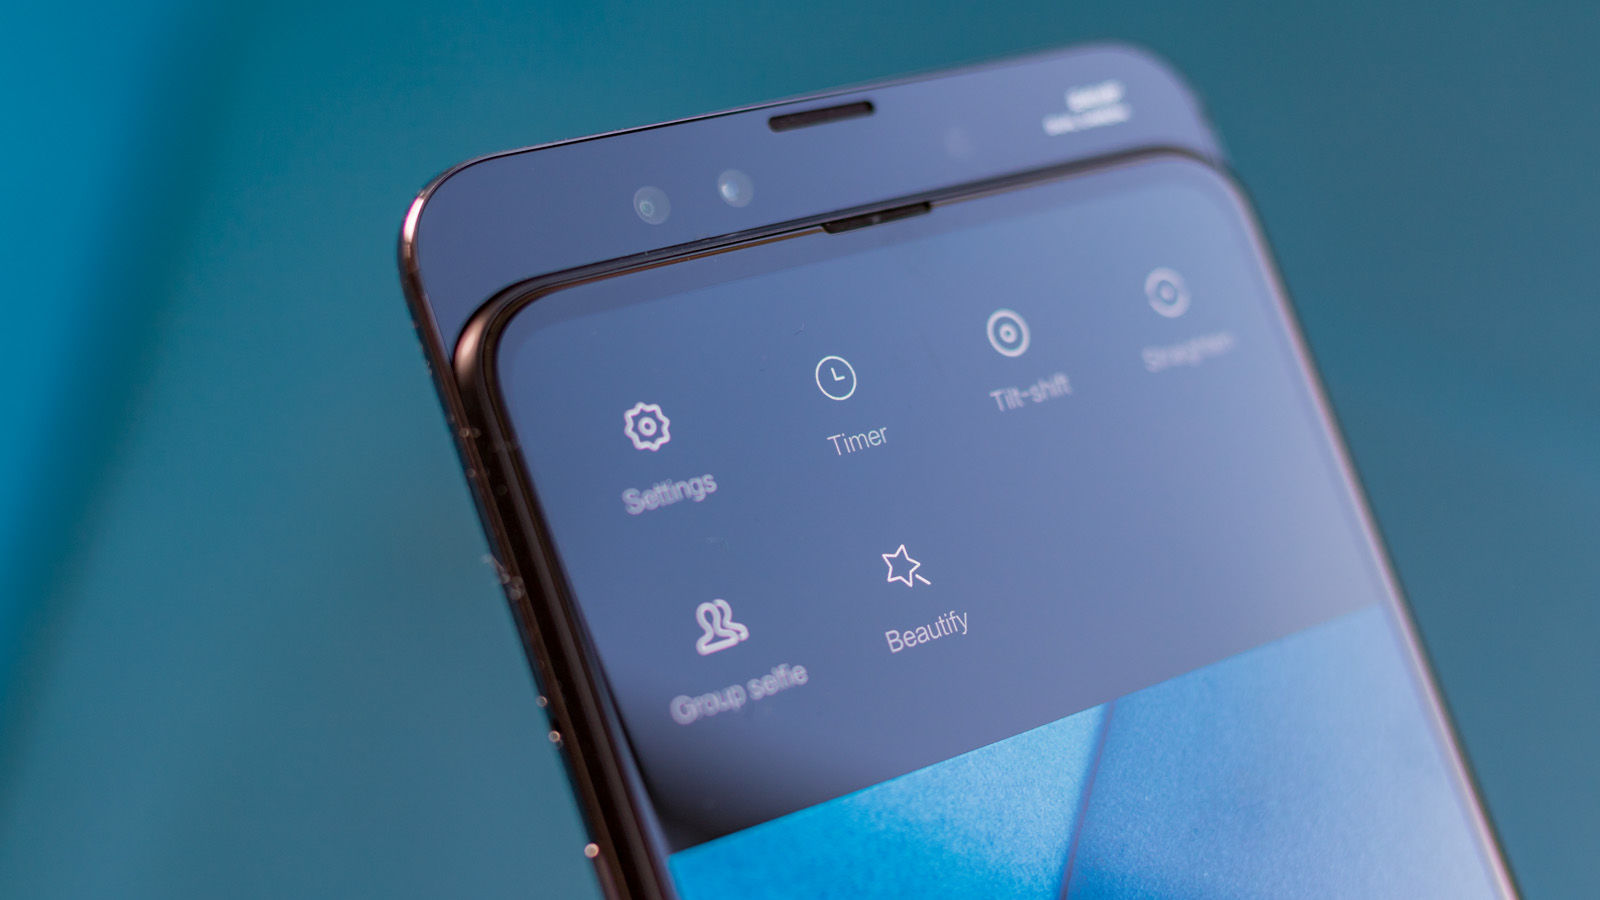 The return of sliding phones: Are they here to stay?